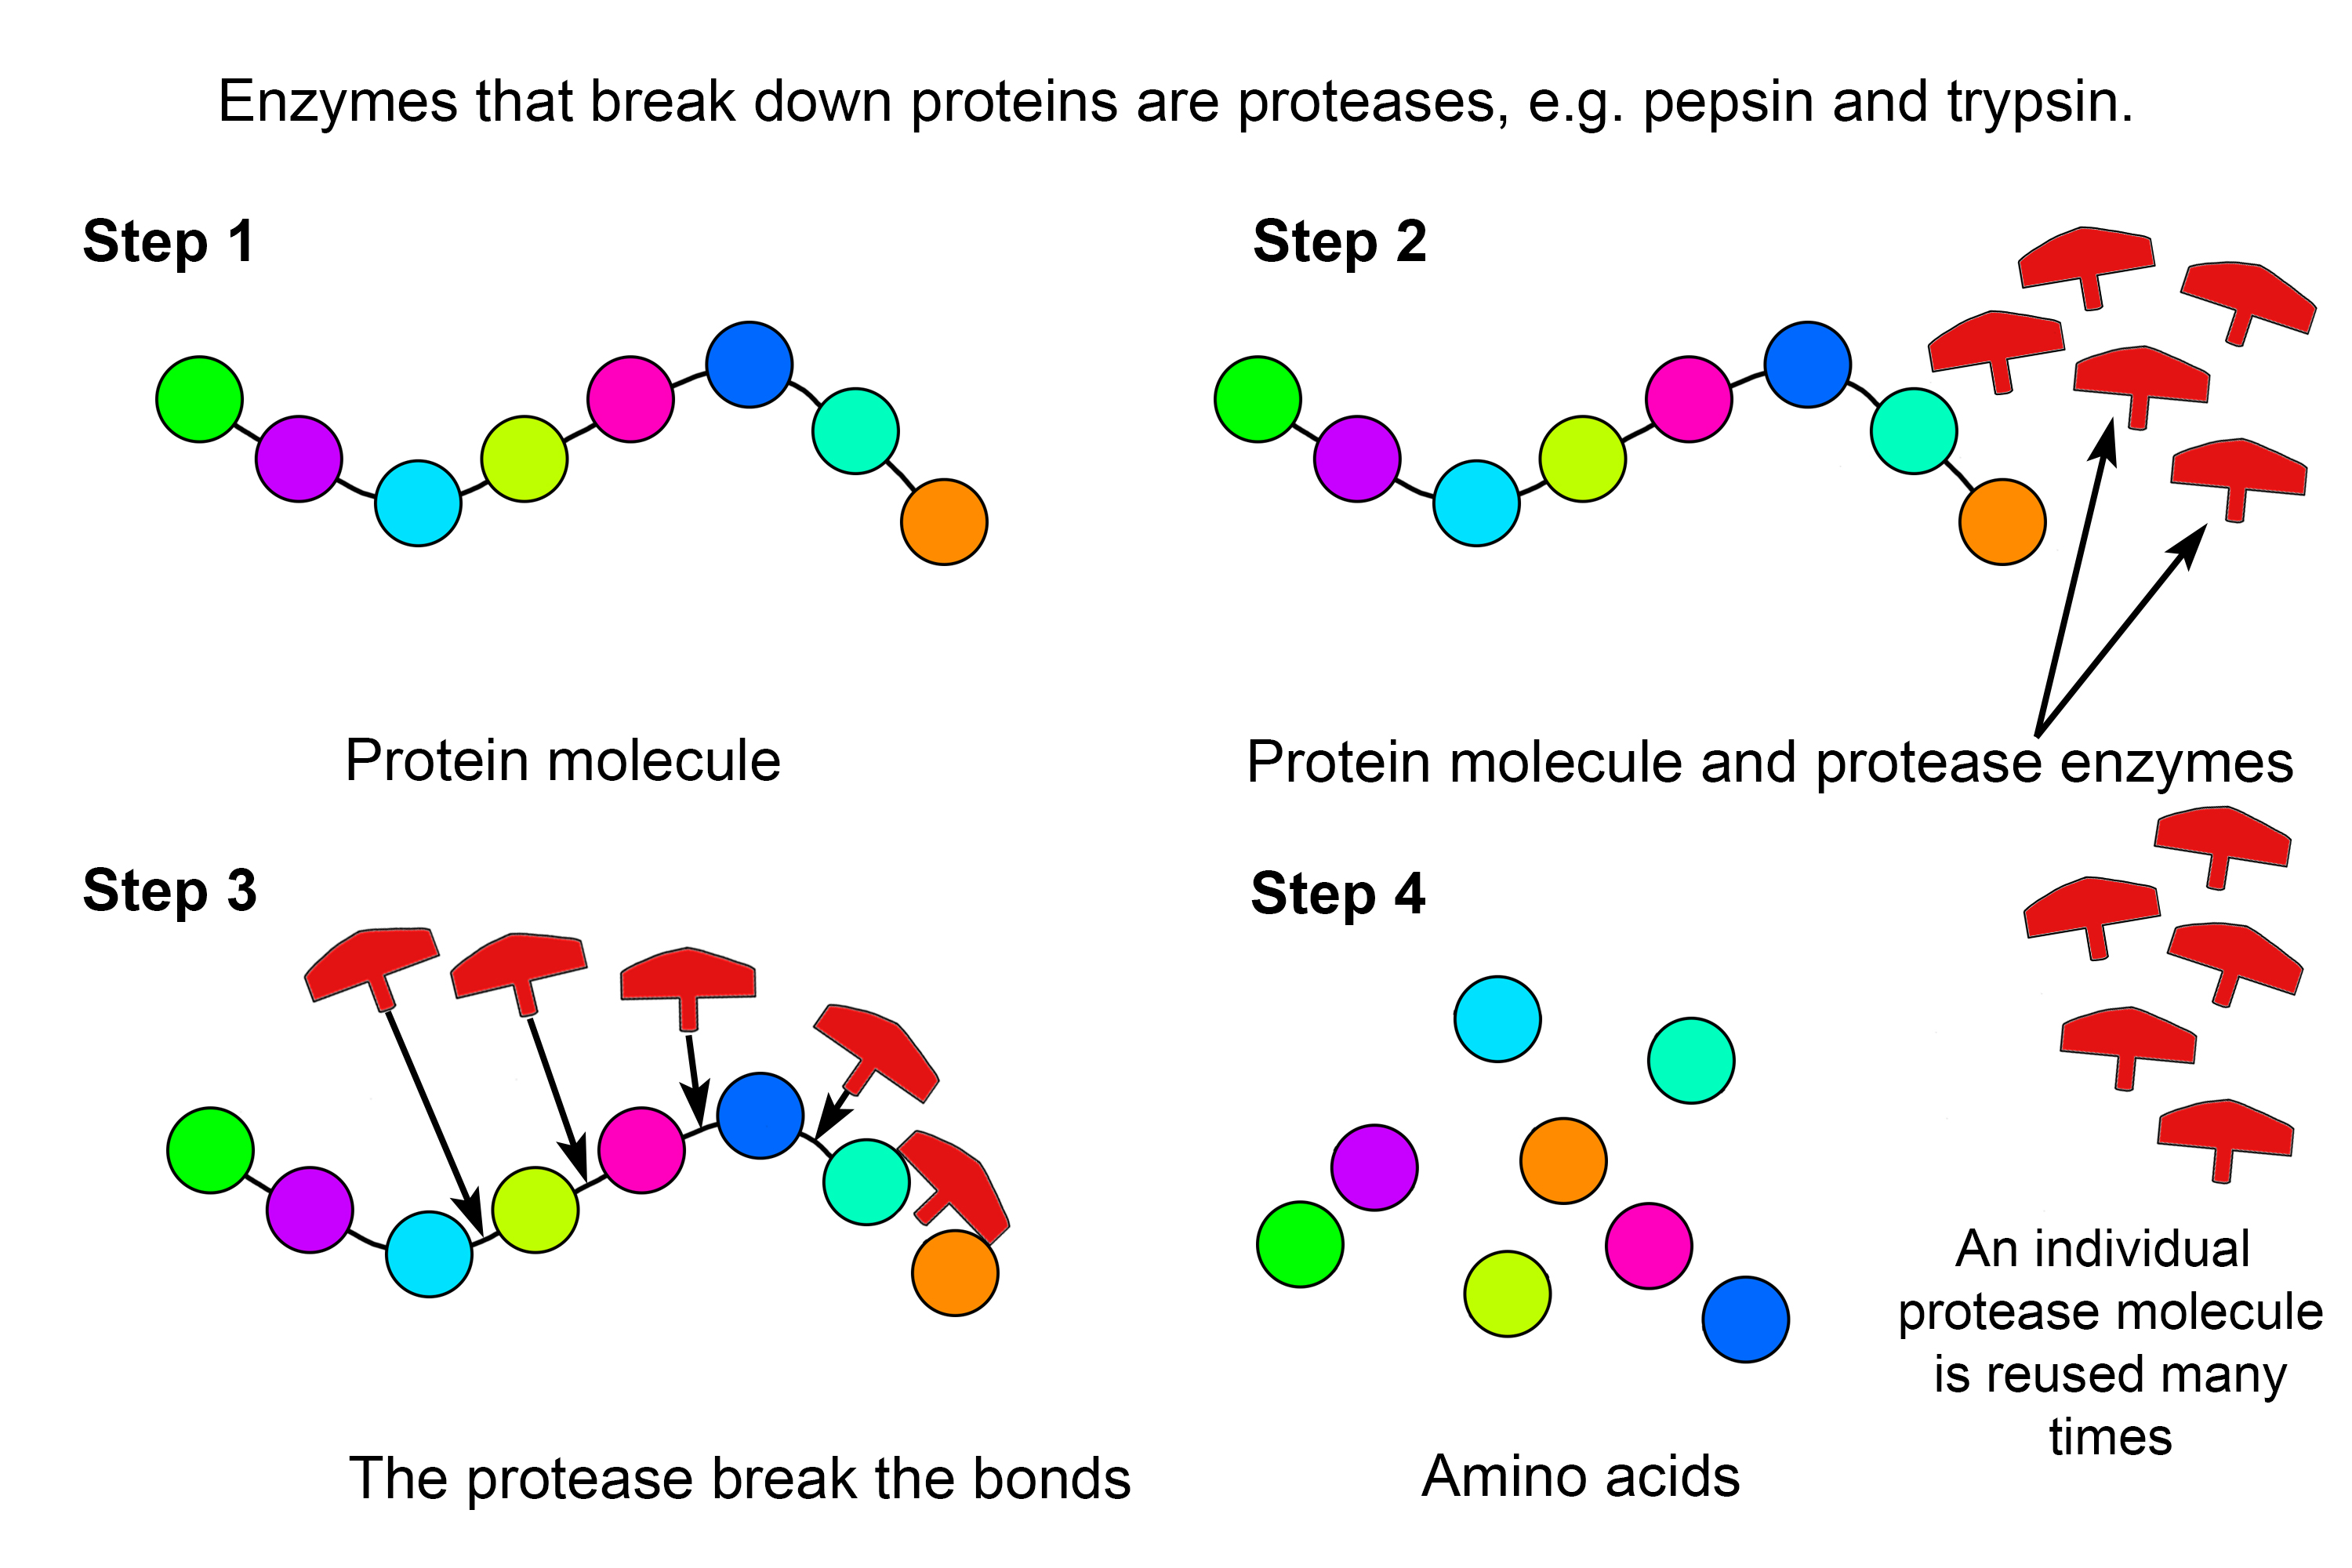 Example Of How Protease Enzymes Break Down Proteins